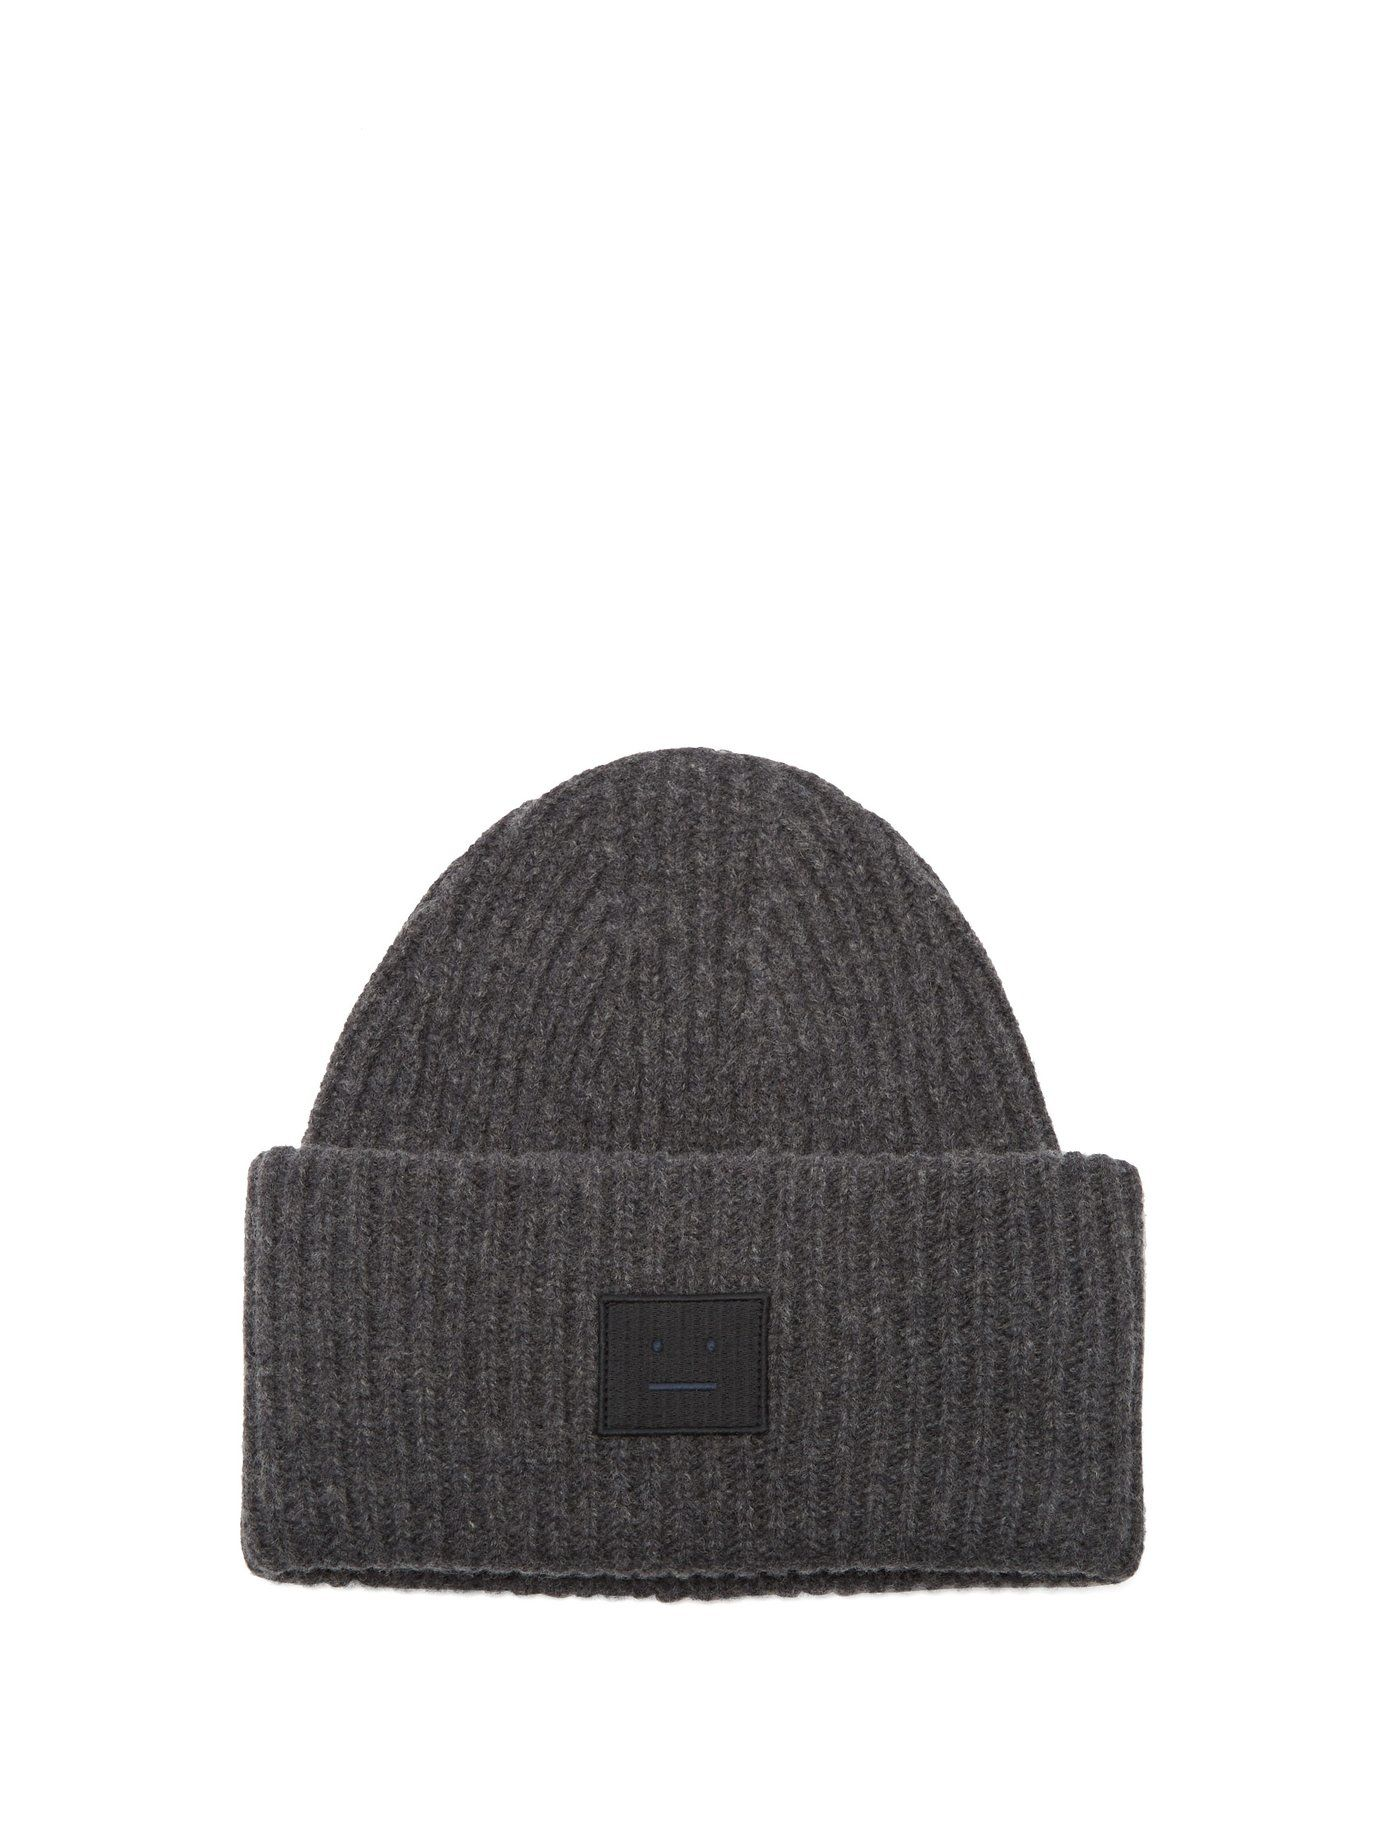 e666316a627 ACNE STUDIOS PANSY S FACE RIBBED-KNIT BEANIE HAT.  acnestudios ...